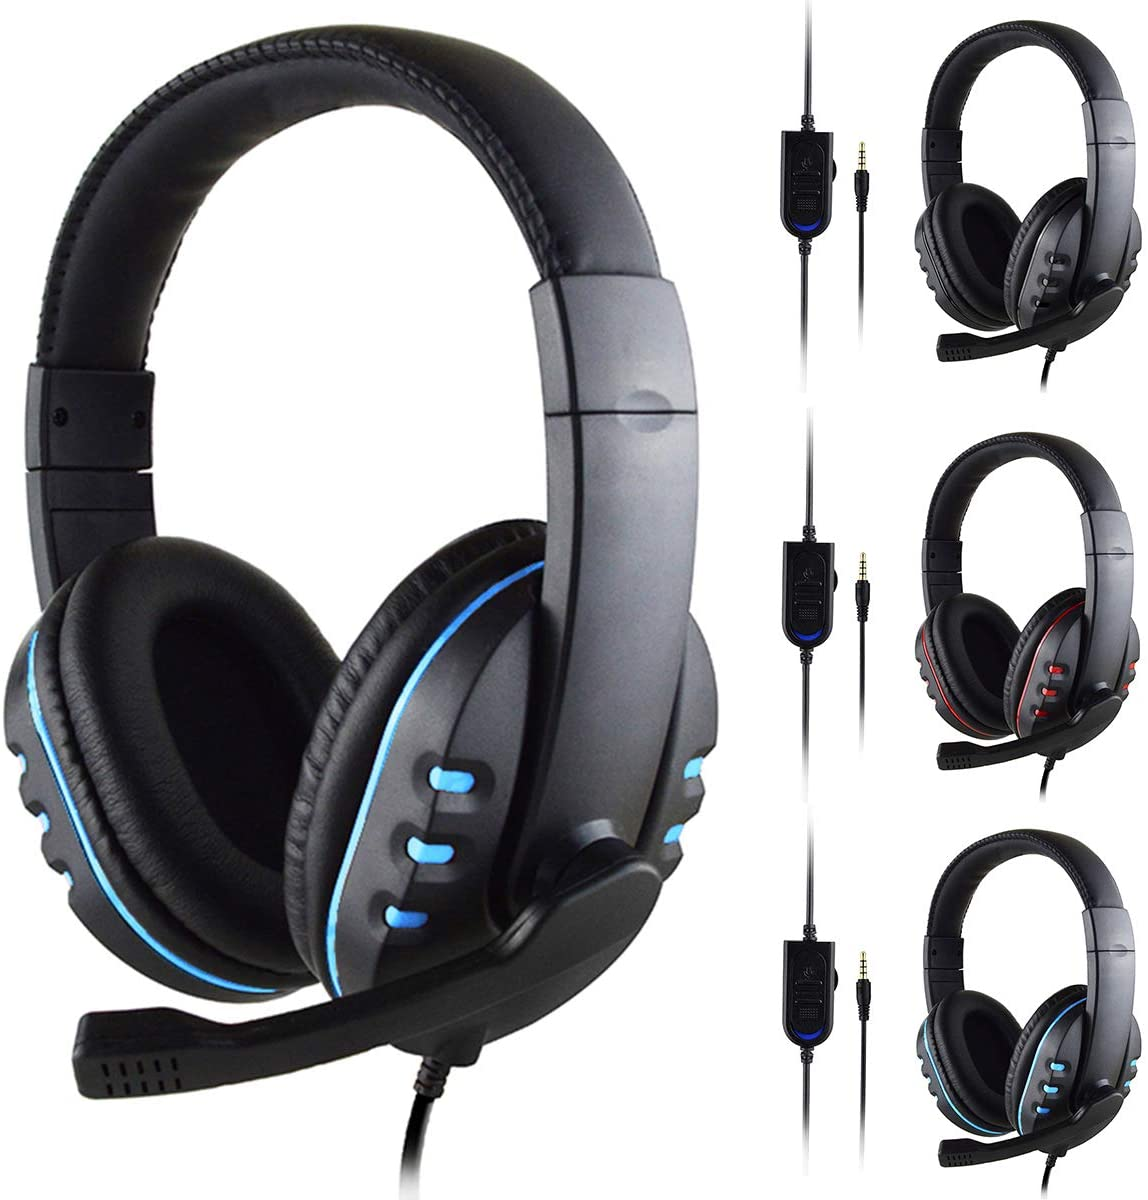 FAMKIT Headset Gaming Headset Mic Stereo Surround Headphone 3.5mm Wired Without Adapter for PS4 Xbox PC Xboxone